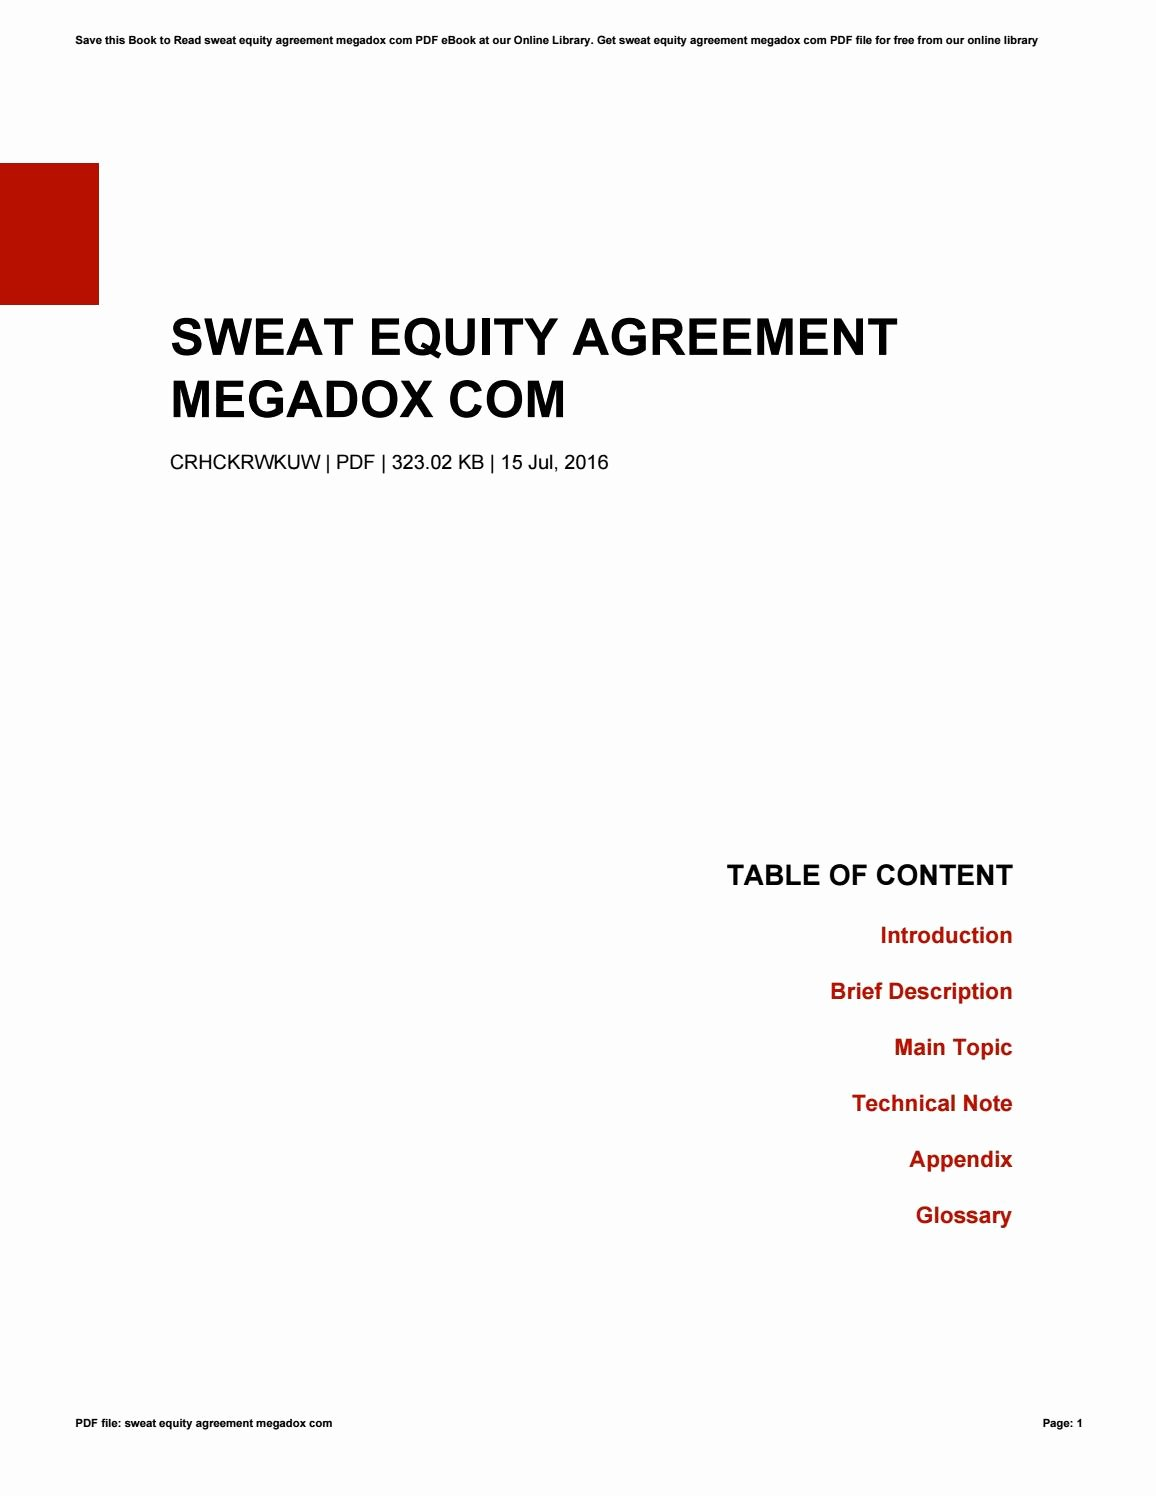 Sweat Equity Agreement Pdf Best Of Sweat Equity Agreement Megadox by theresaholford4092